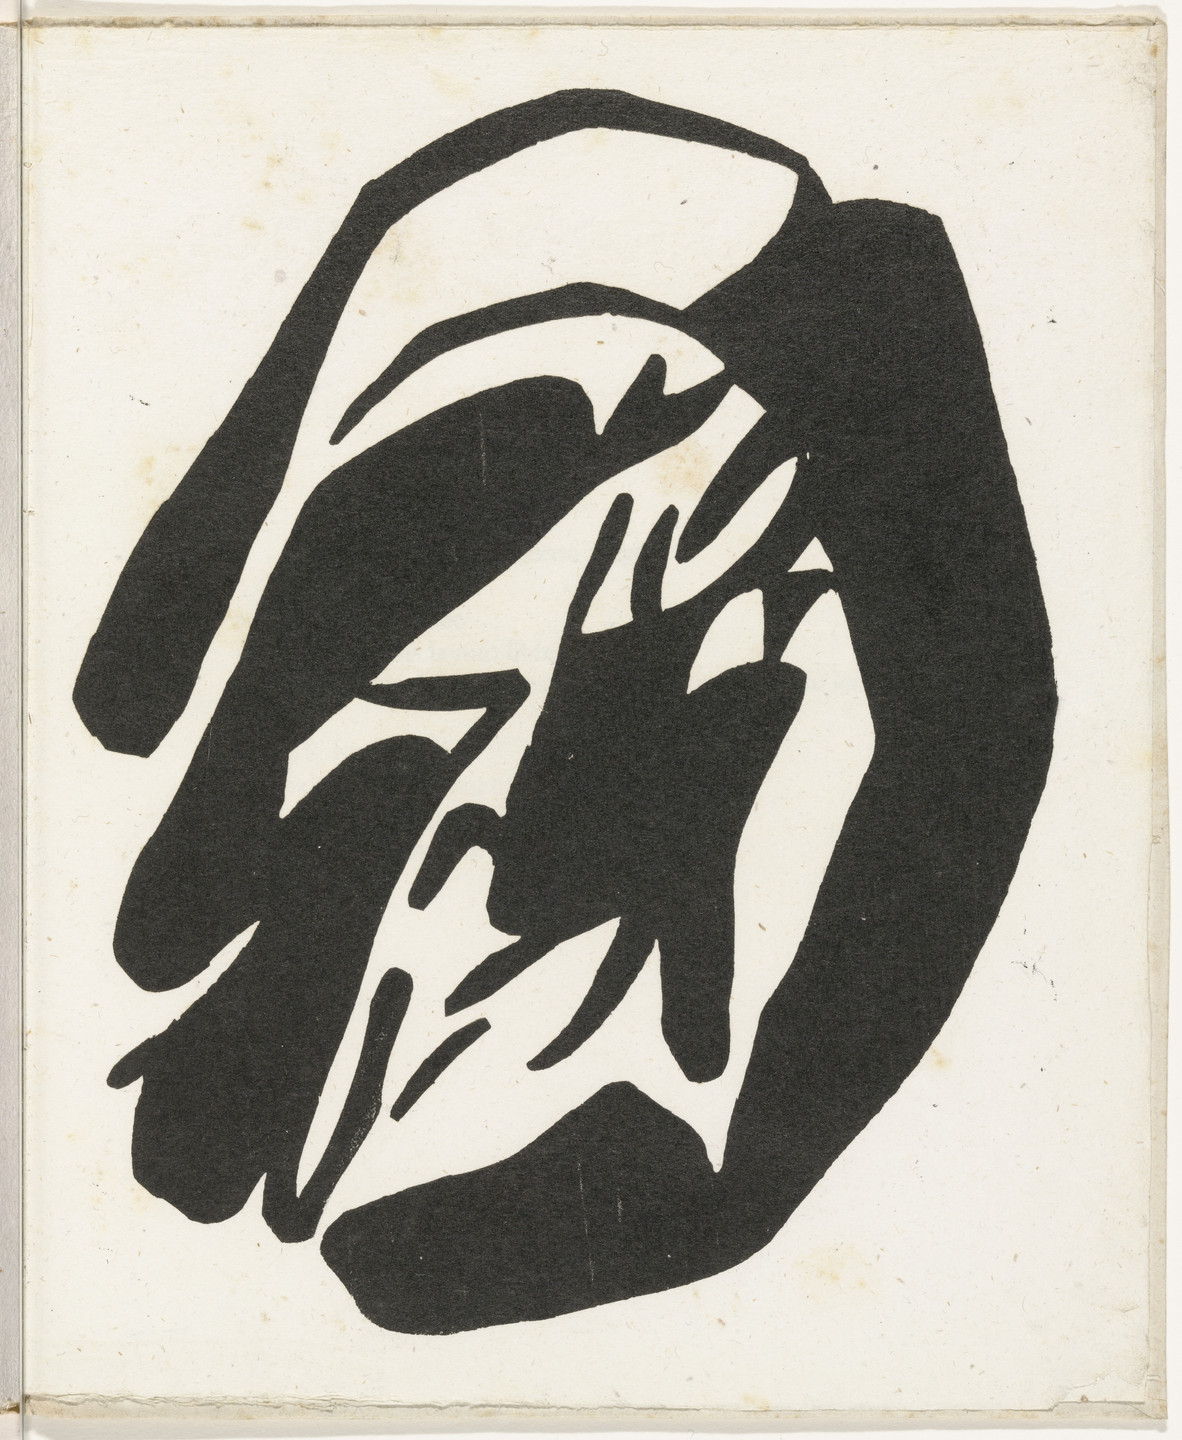 Jean (Hans) Arp. Plate (folio 36) from Cinéma calendrier du coeur abstrait, maisons (Cinema Calendar of the Abstract Heart, Houses). 1920